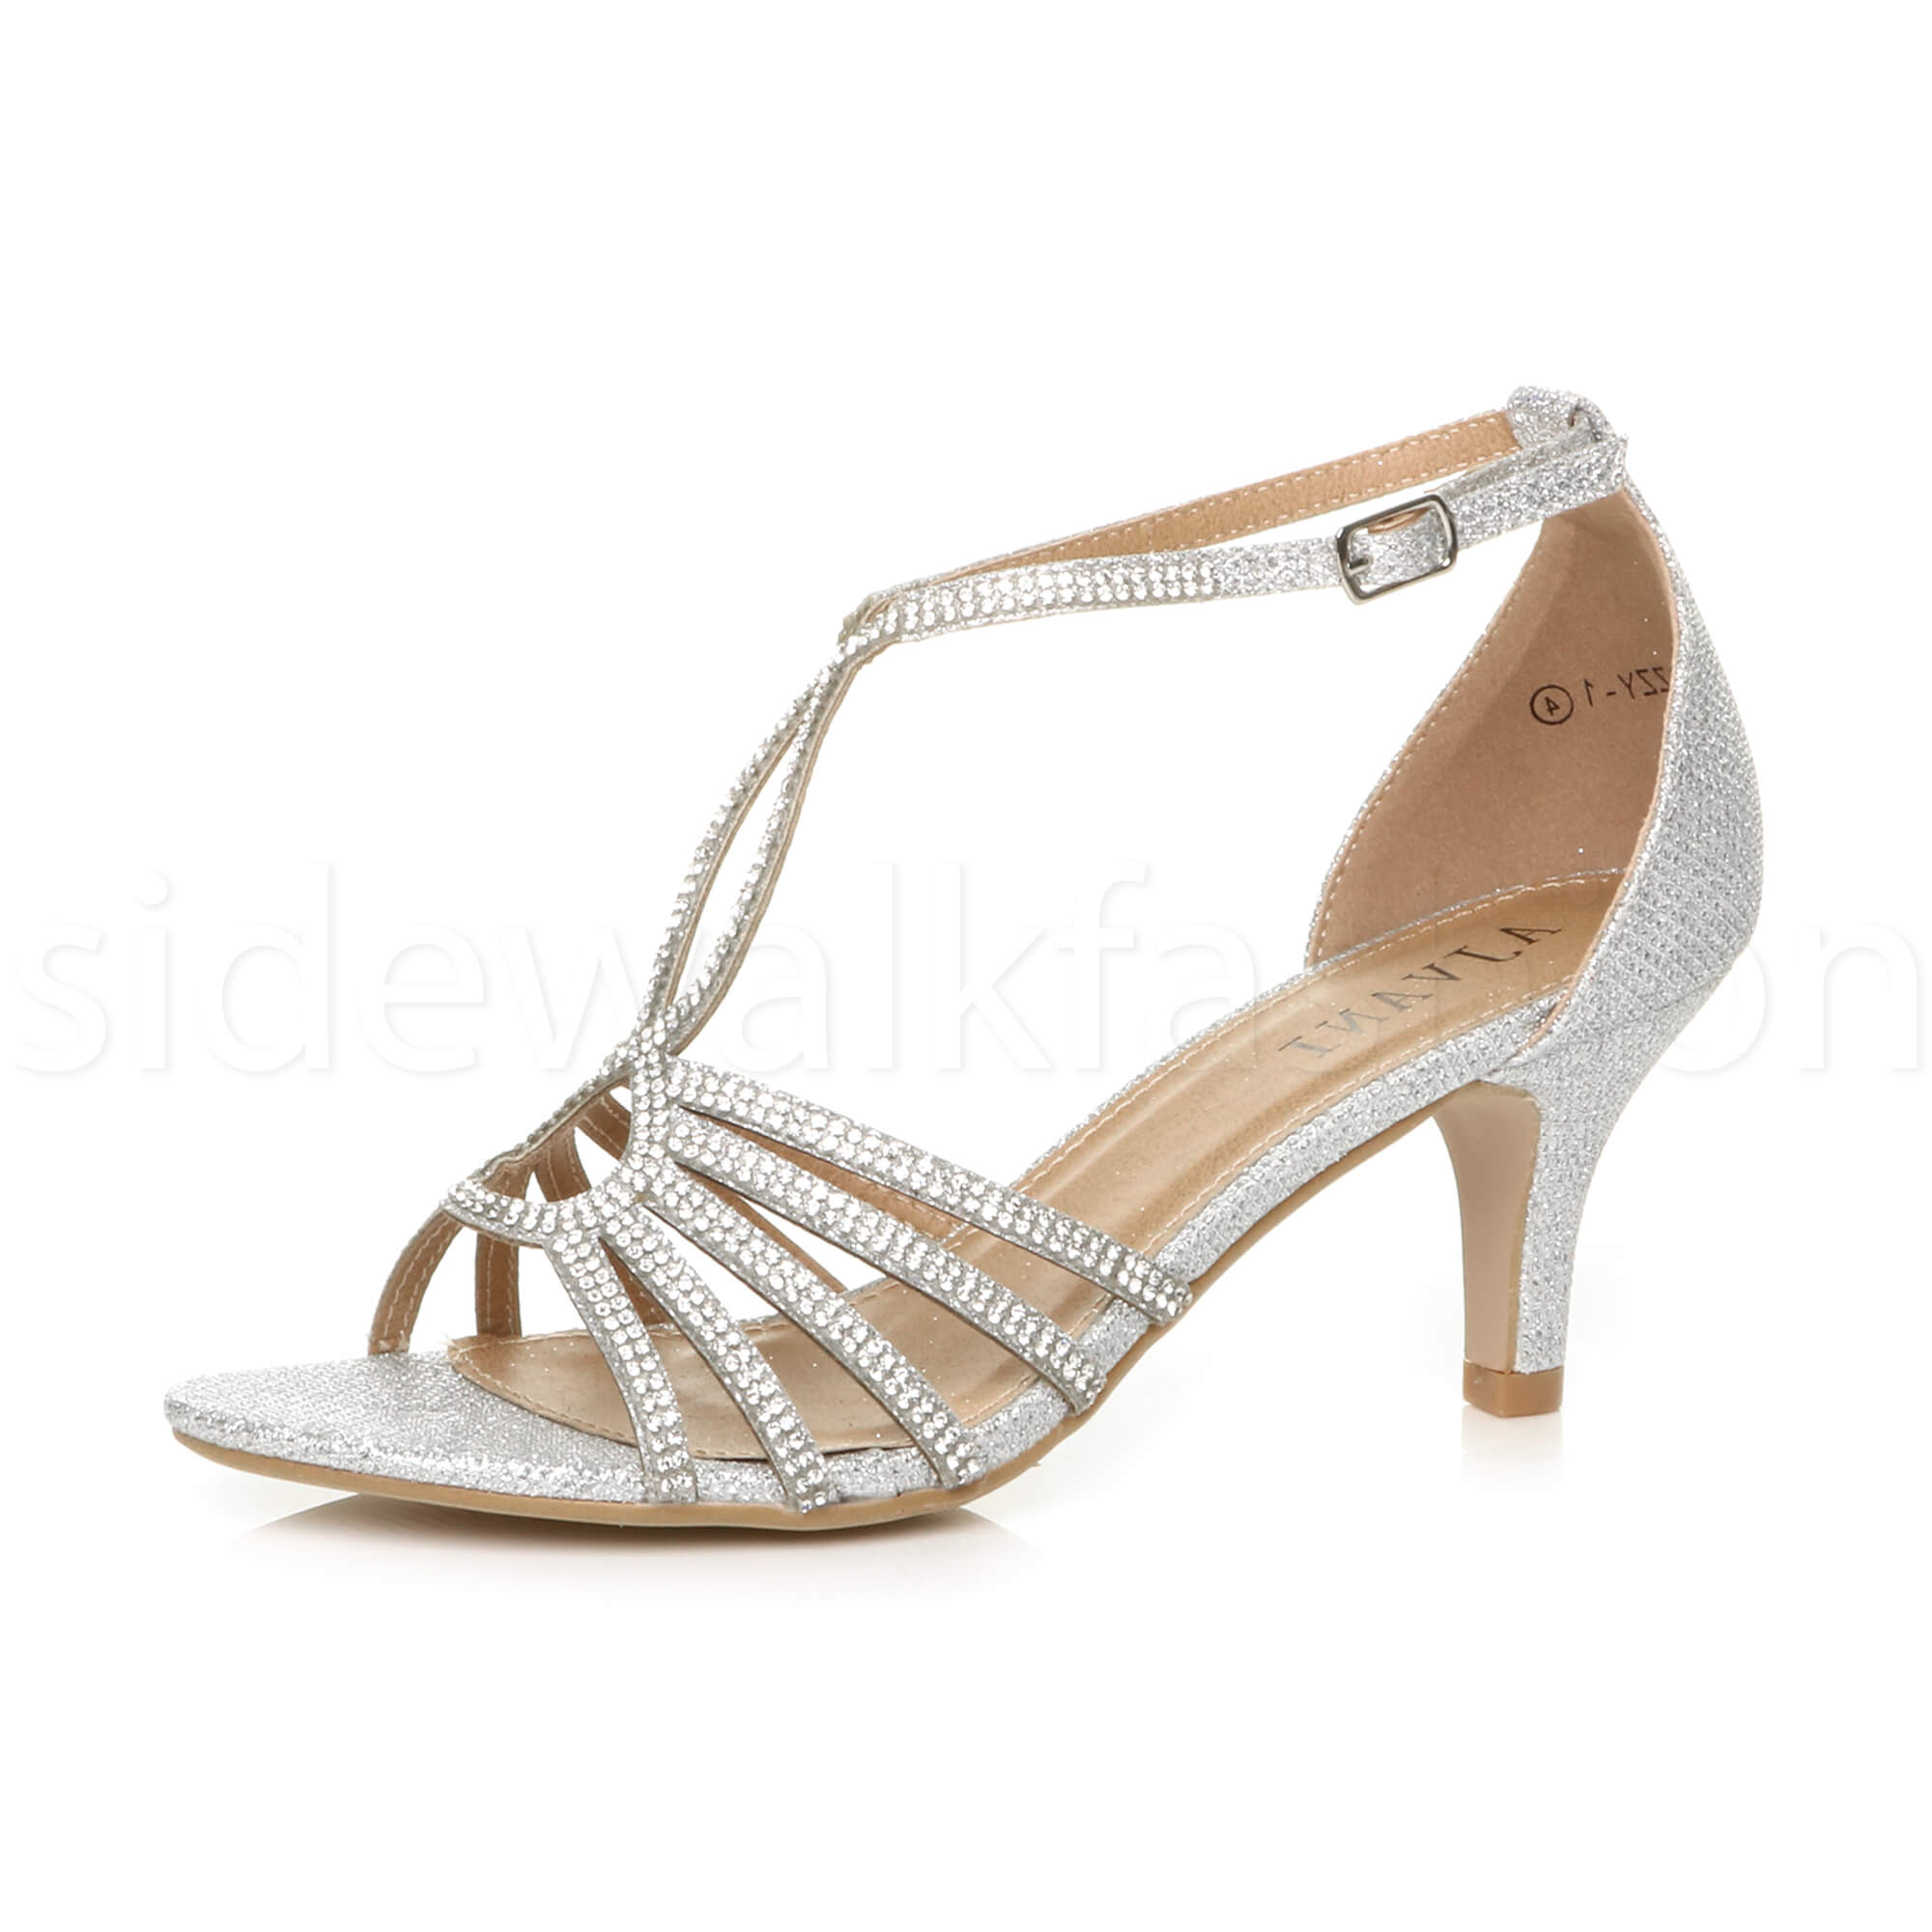 5bc69373a22 Womens ladies medium heel wedding bridal t-bar strappy sandals prom shoes  size